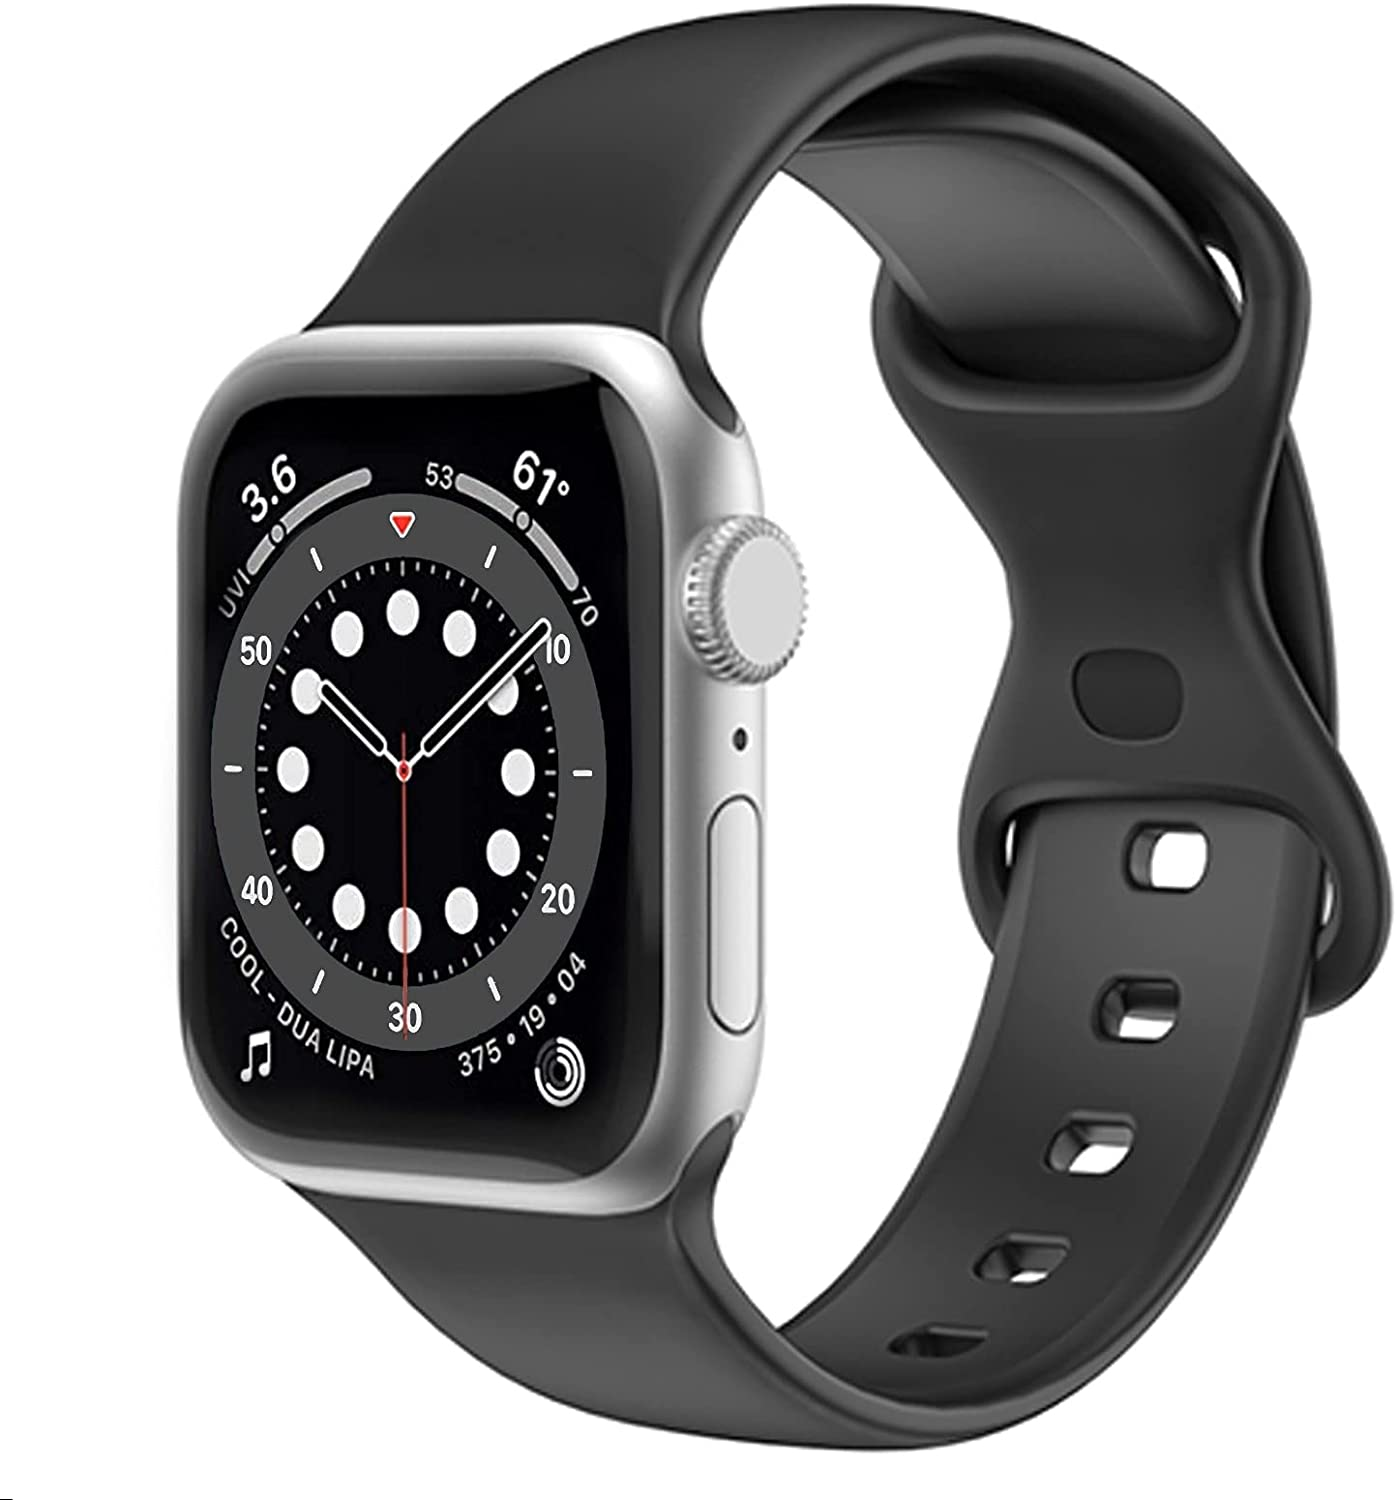 Victadio Band Compatible with Apple Watch Band, Soft Silicone Band for iWatch